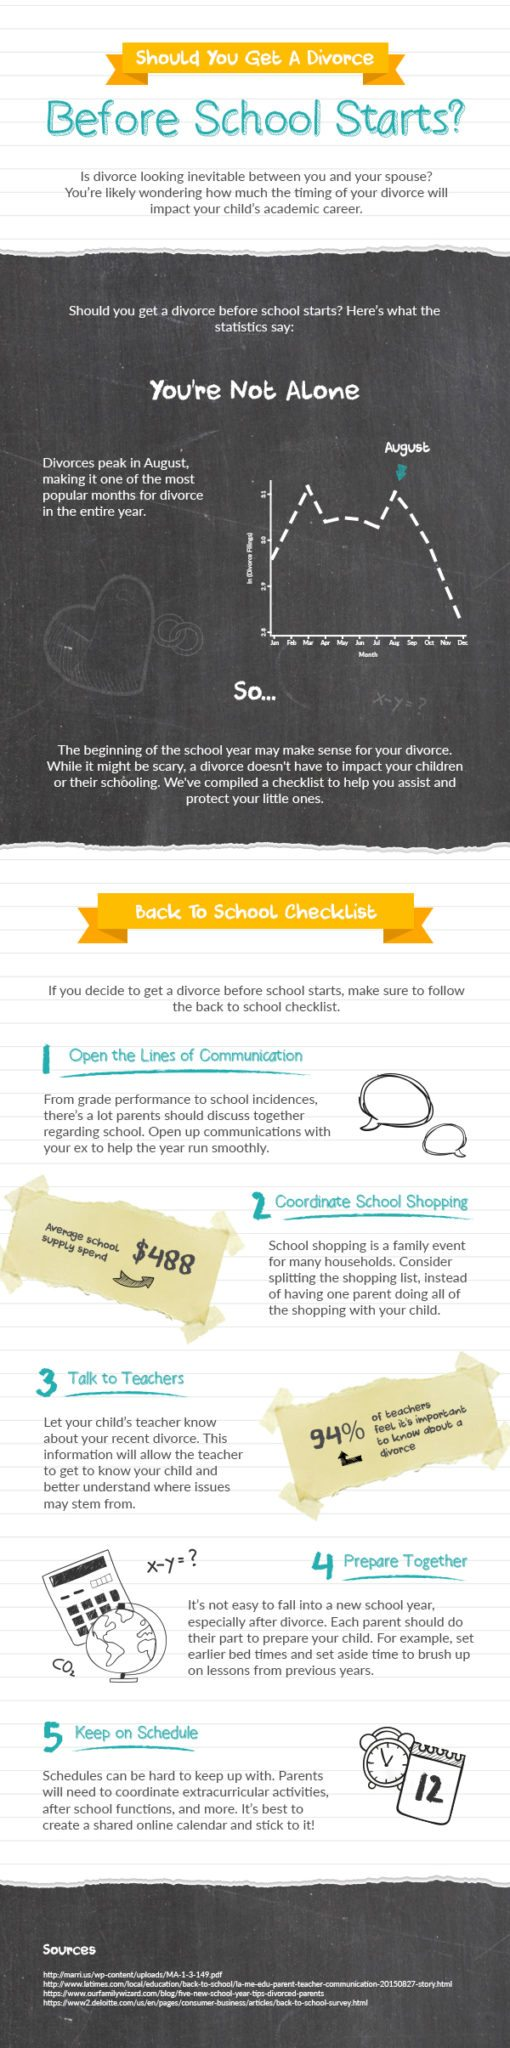 Divorce-Before-School-Starts-infographic-plaza